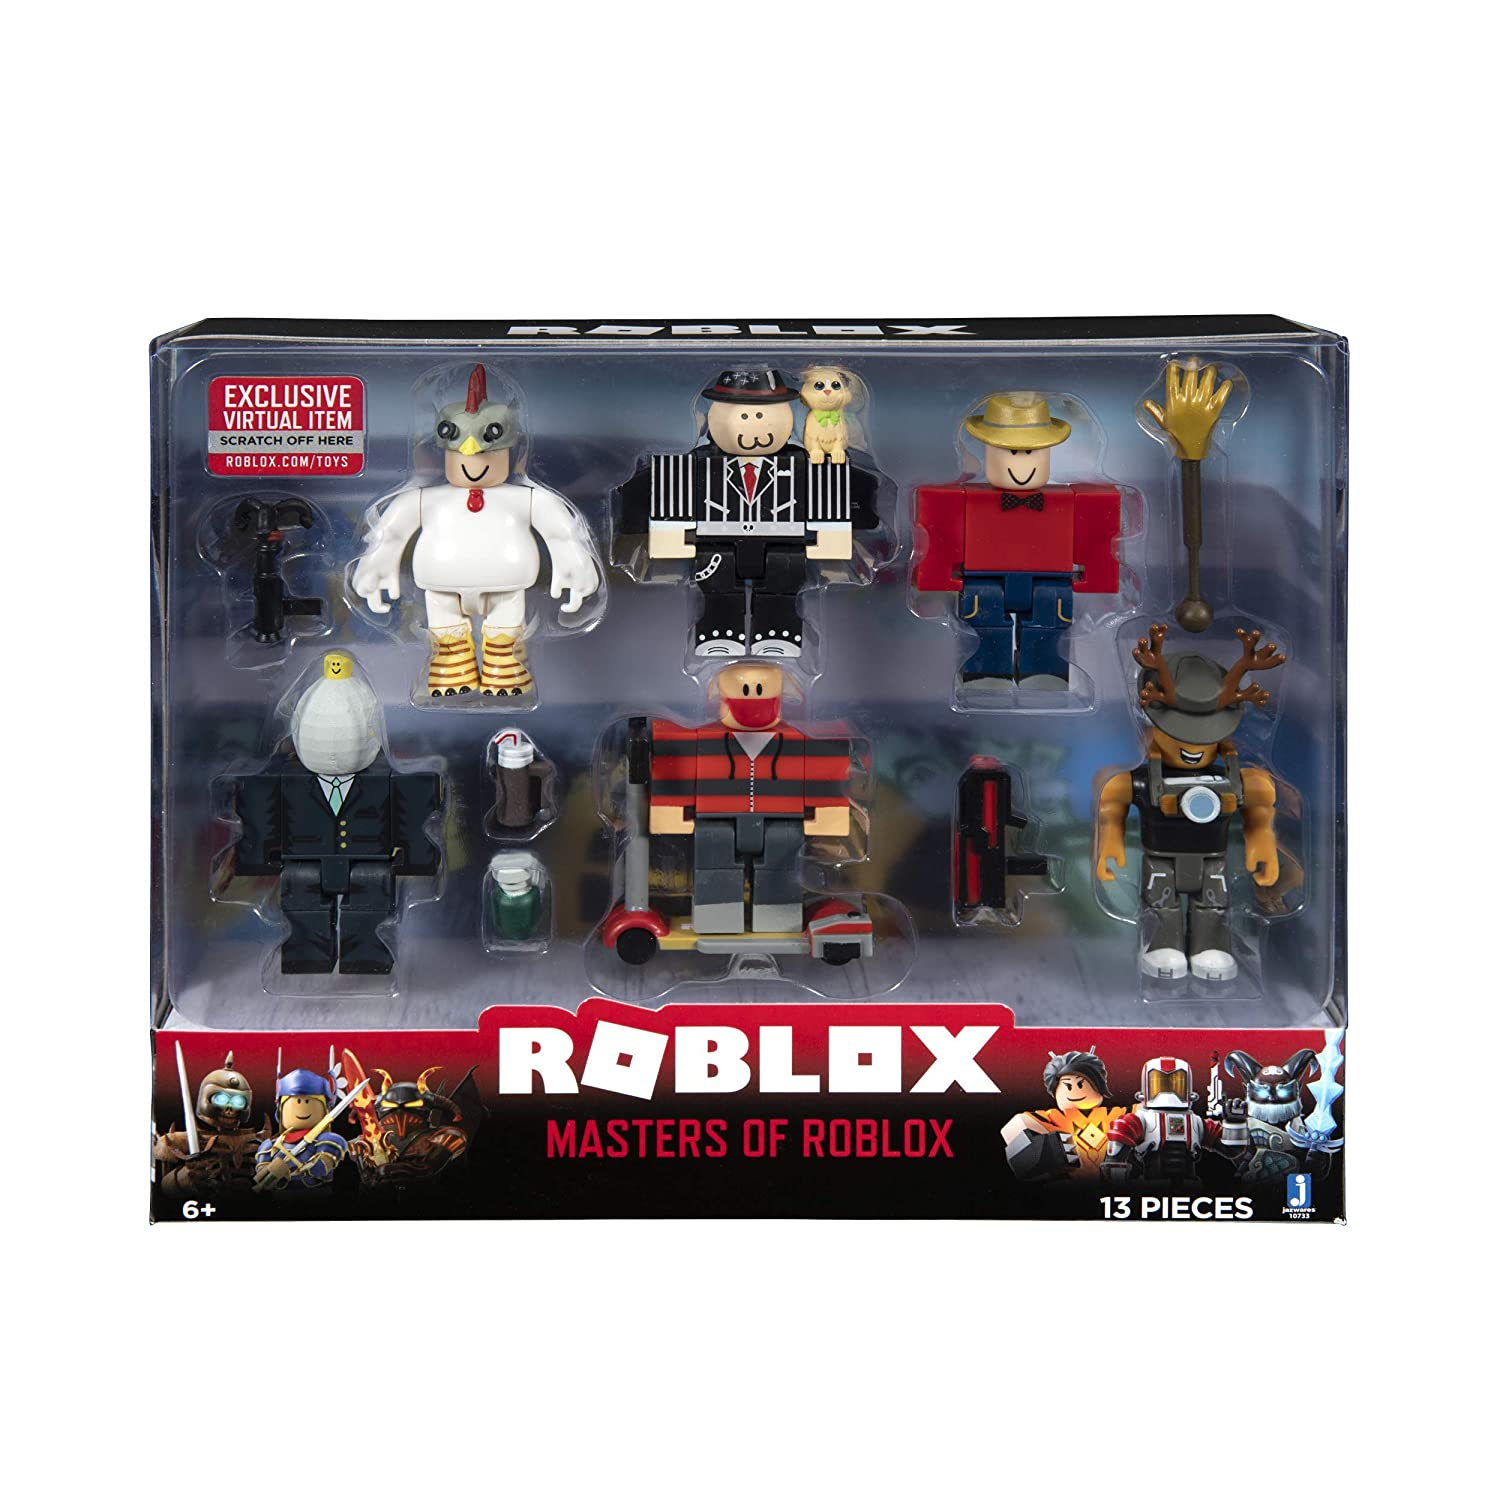 Roblox Mm3 Codes List Roblox 2 Player Superhero Tycoon Codes 2018 September